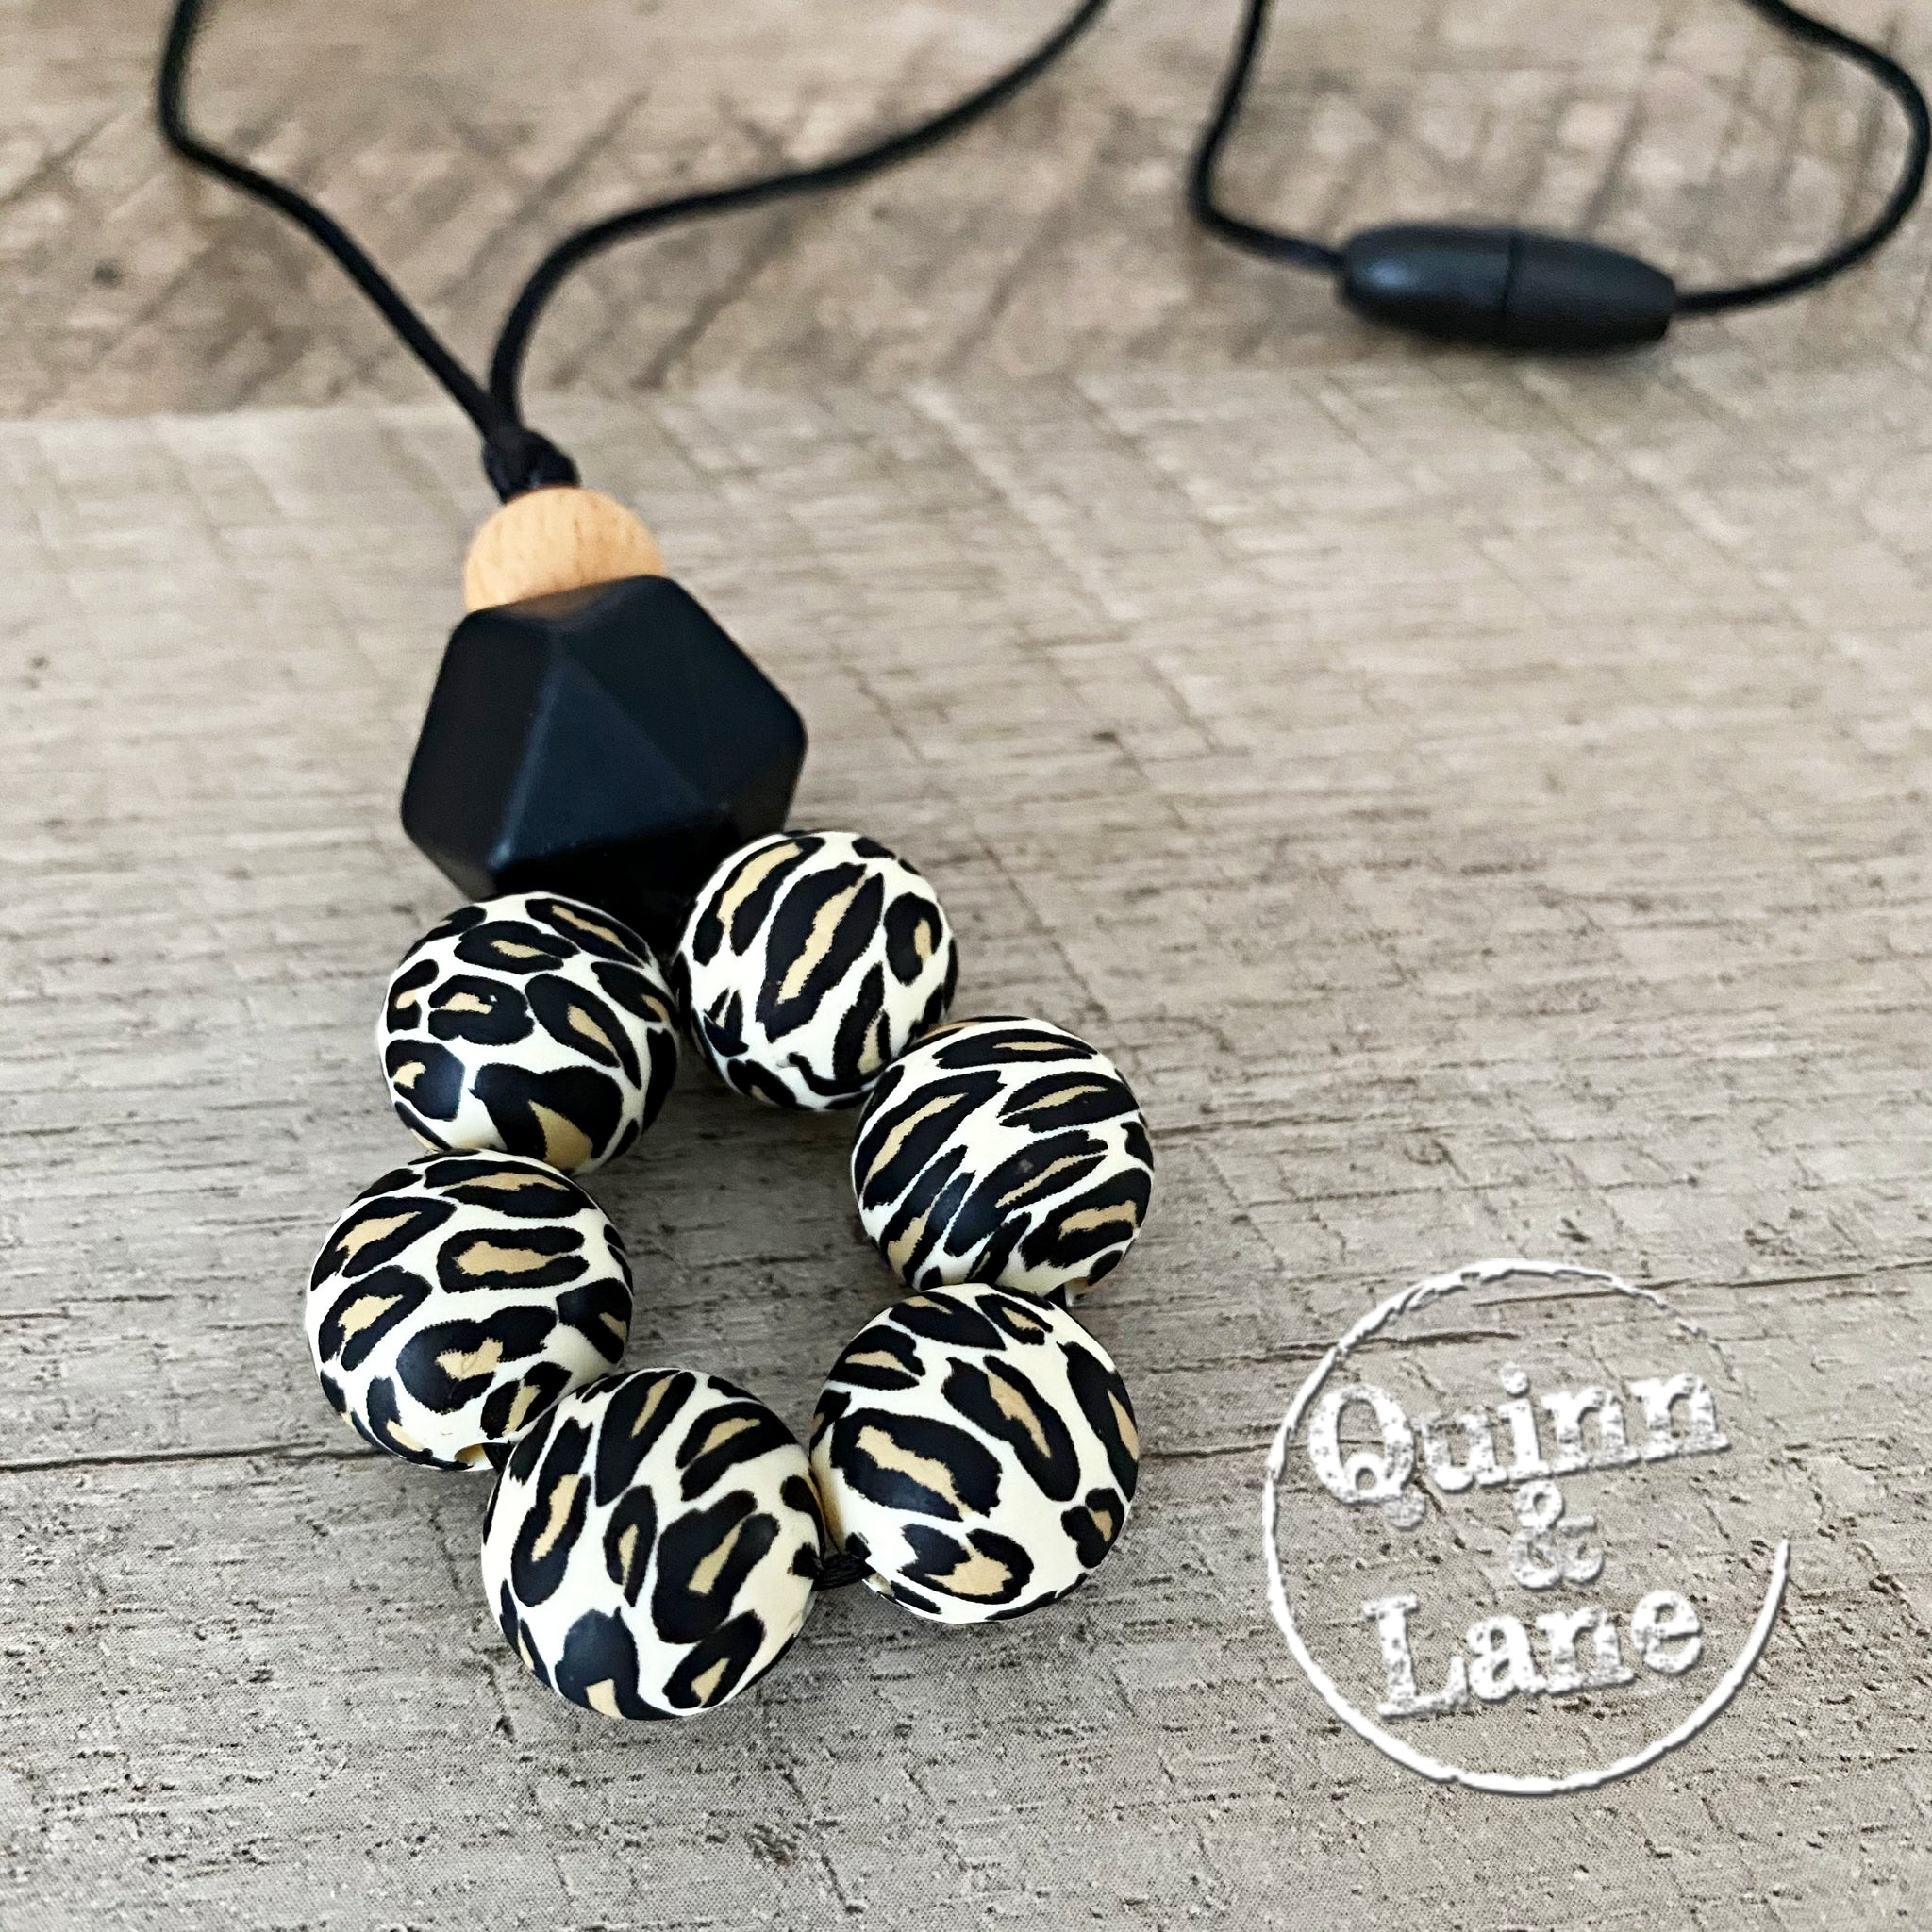 ADULT | Silicone Teething & Nursing Necklace - Leopard Circle Pendant